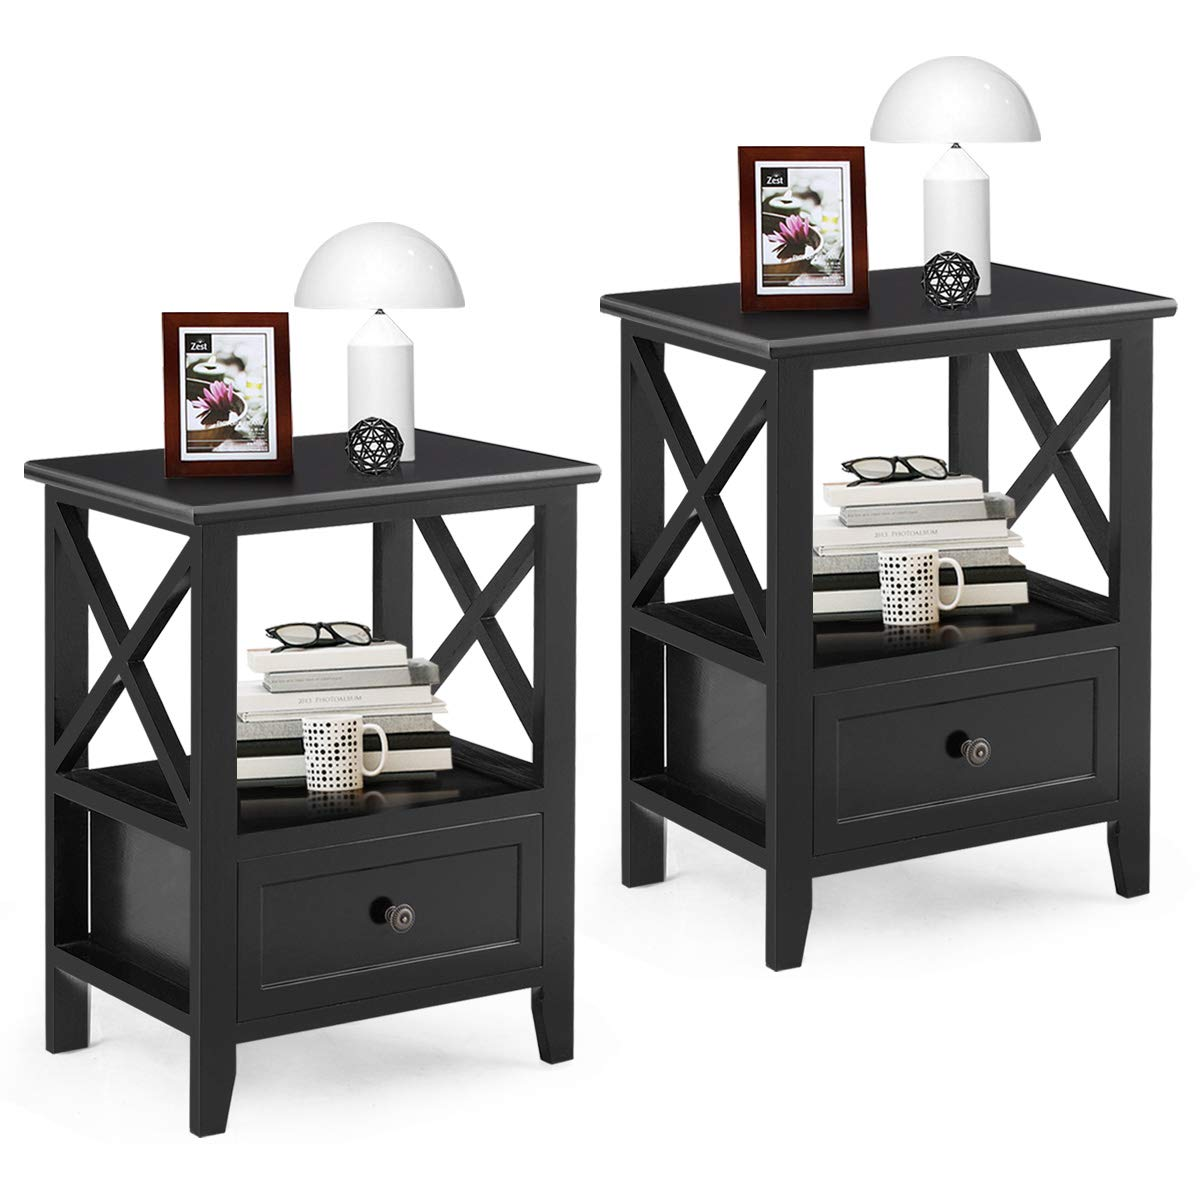 Giantex Nightstand Set of 2 End Tables W/Storage Shelf and Wooden Drawer for Living Room Bedroom Bedside Accent Home Furniture Side Table (Black) by Giantex